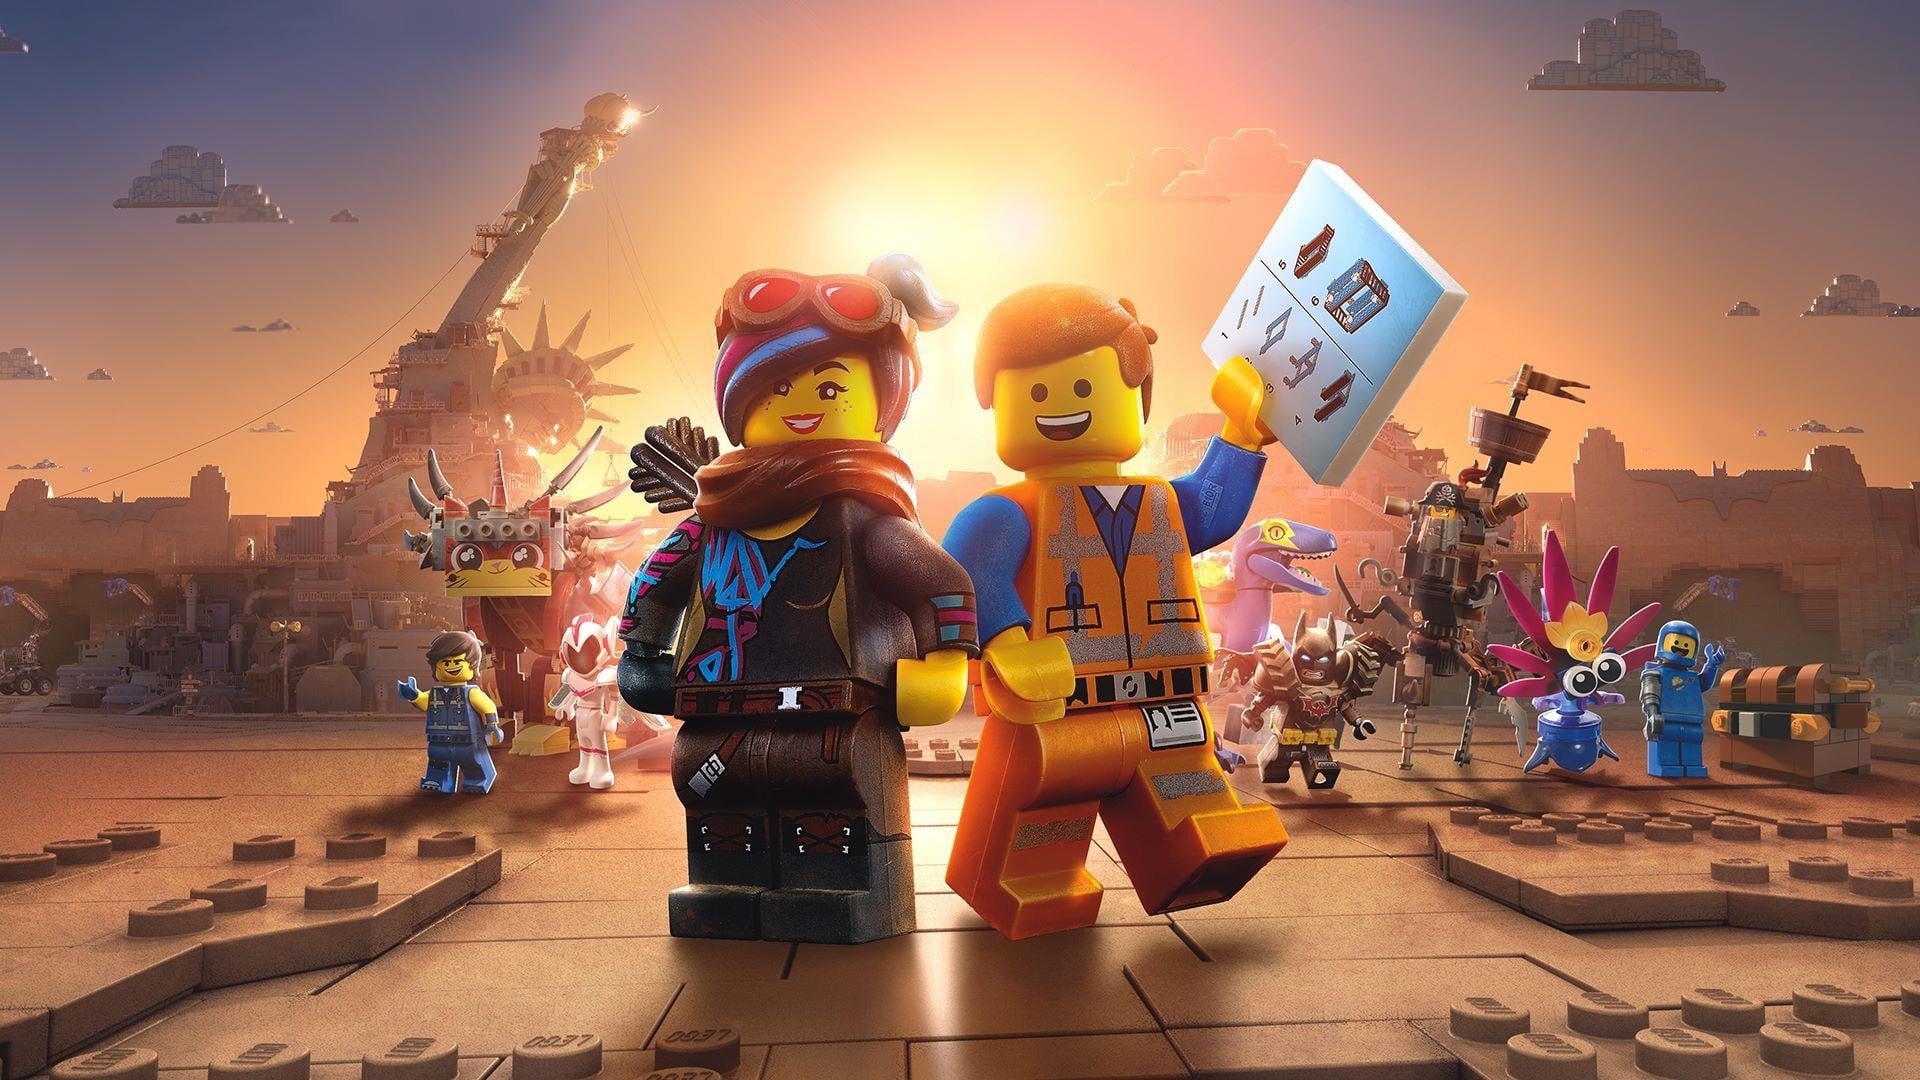 Pictures From The Lego Movie: The LEGO Movie 2 Videogame Announced; Available To Pre